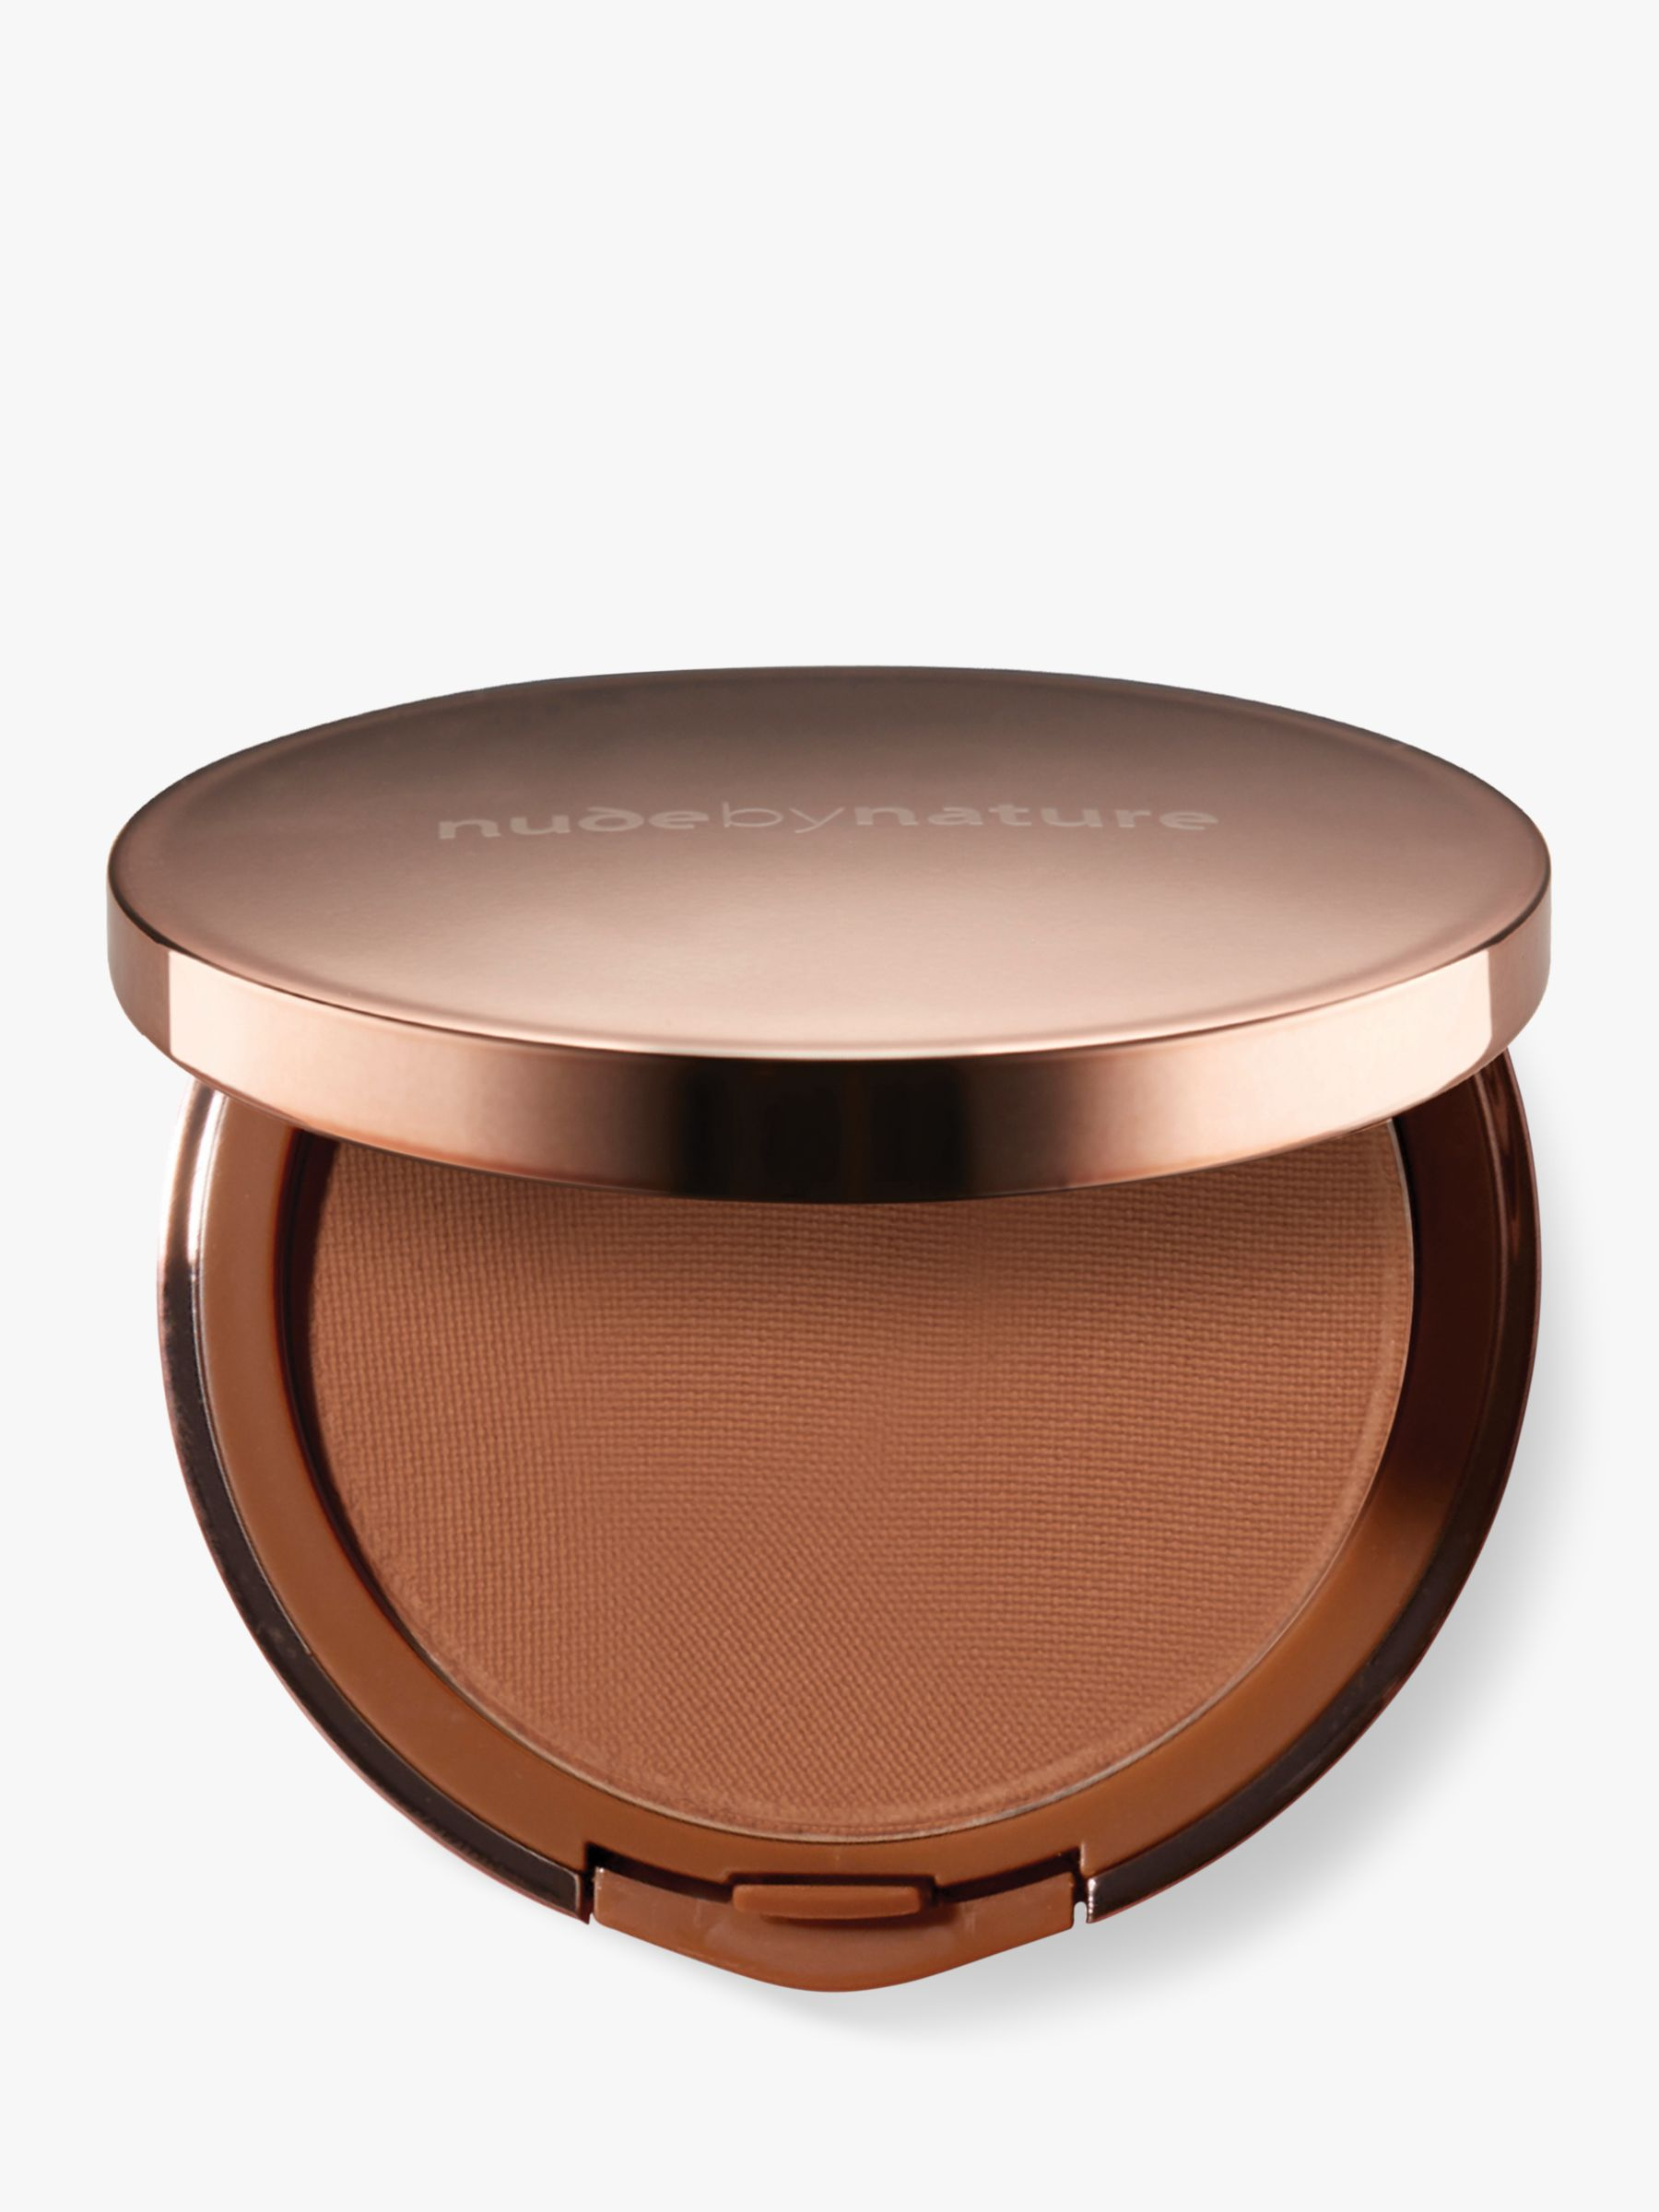 Nude by Nature Nude by Nature Matte Pressed Bronzer, Bronze